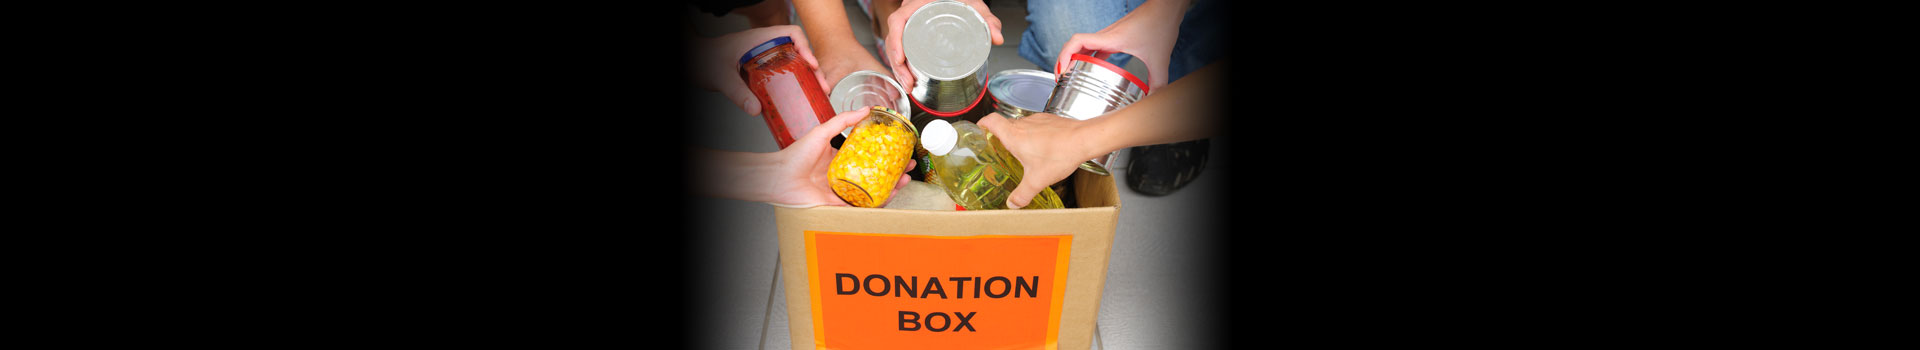 food-donation-box